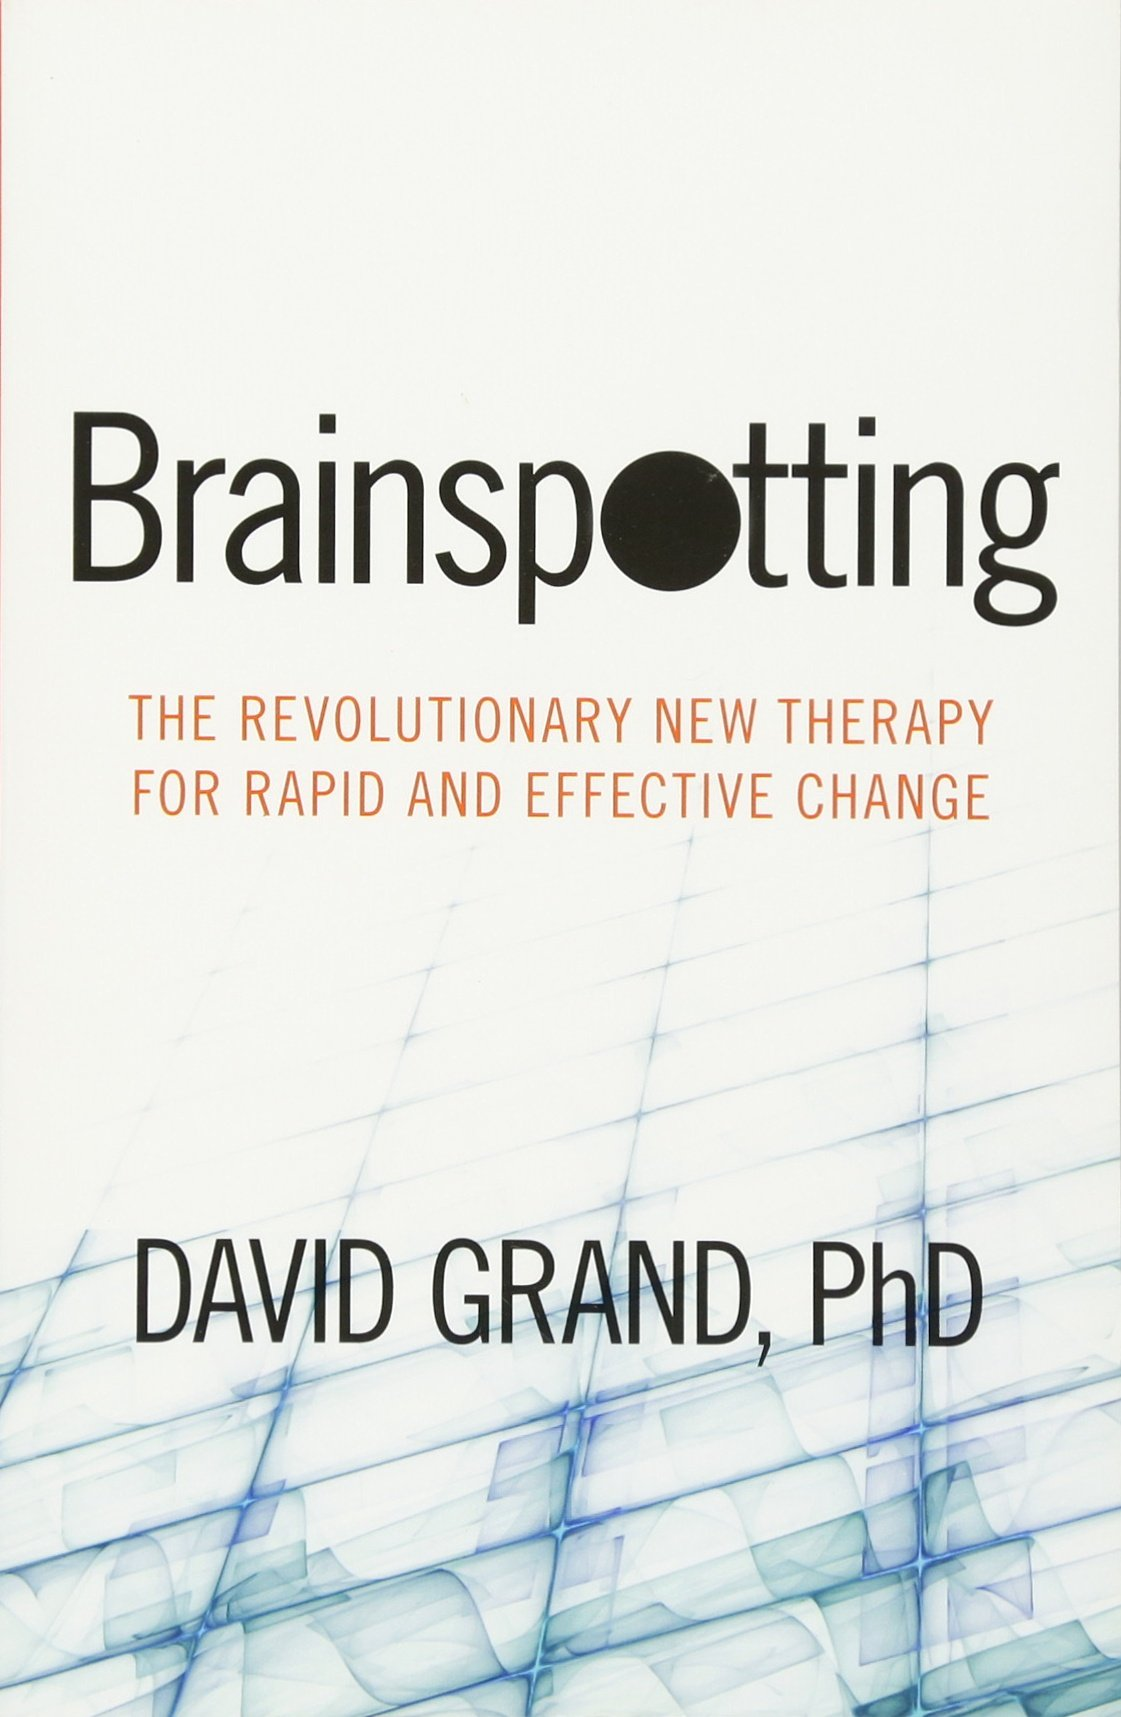 Brainspotting: The Revolutionary New Therapy for Rapid and Effective Change pdf